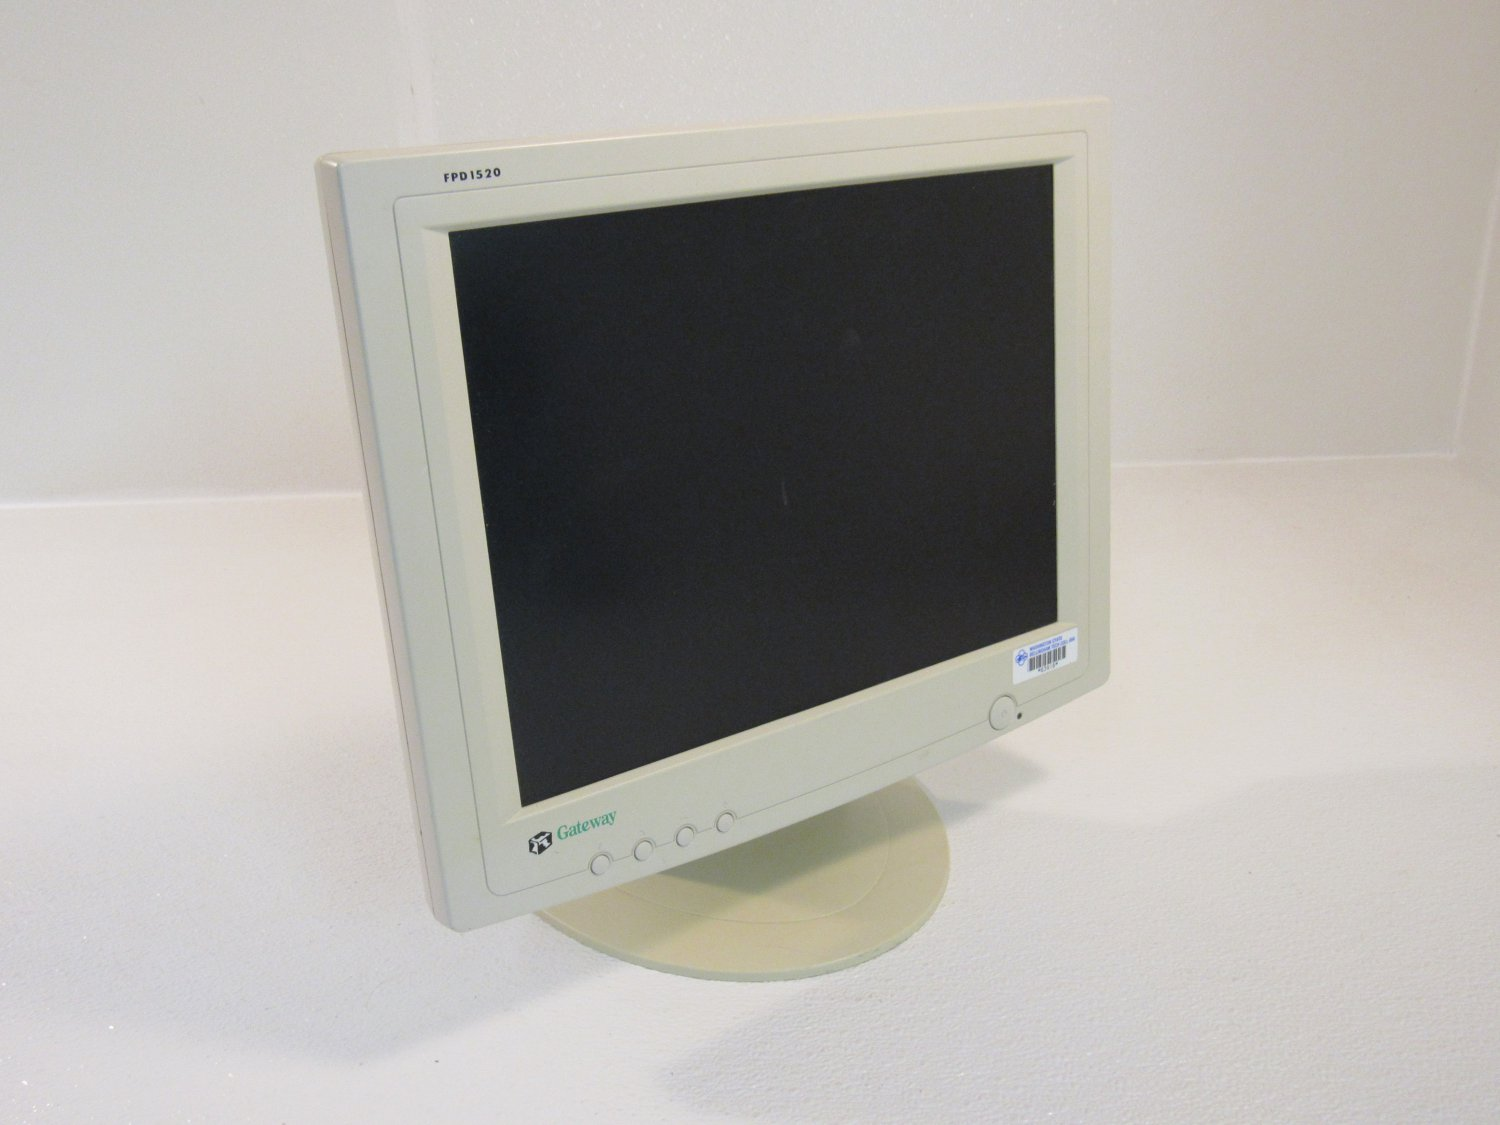 Gateway 15in Color Monitor Flat Screen LCD White 100-240V FPD1520